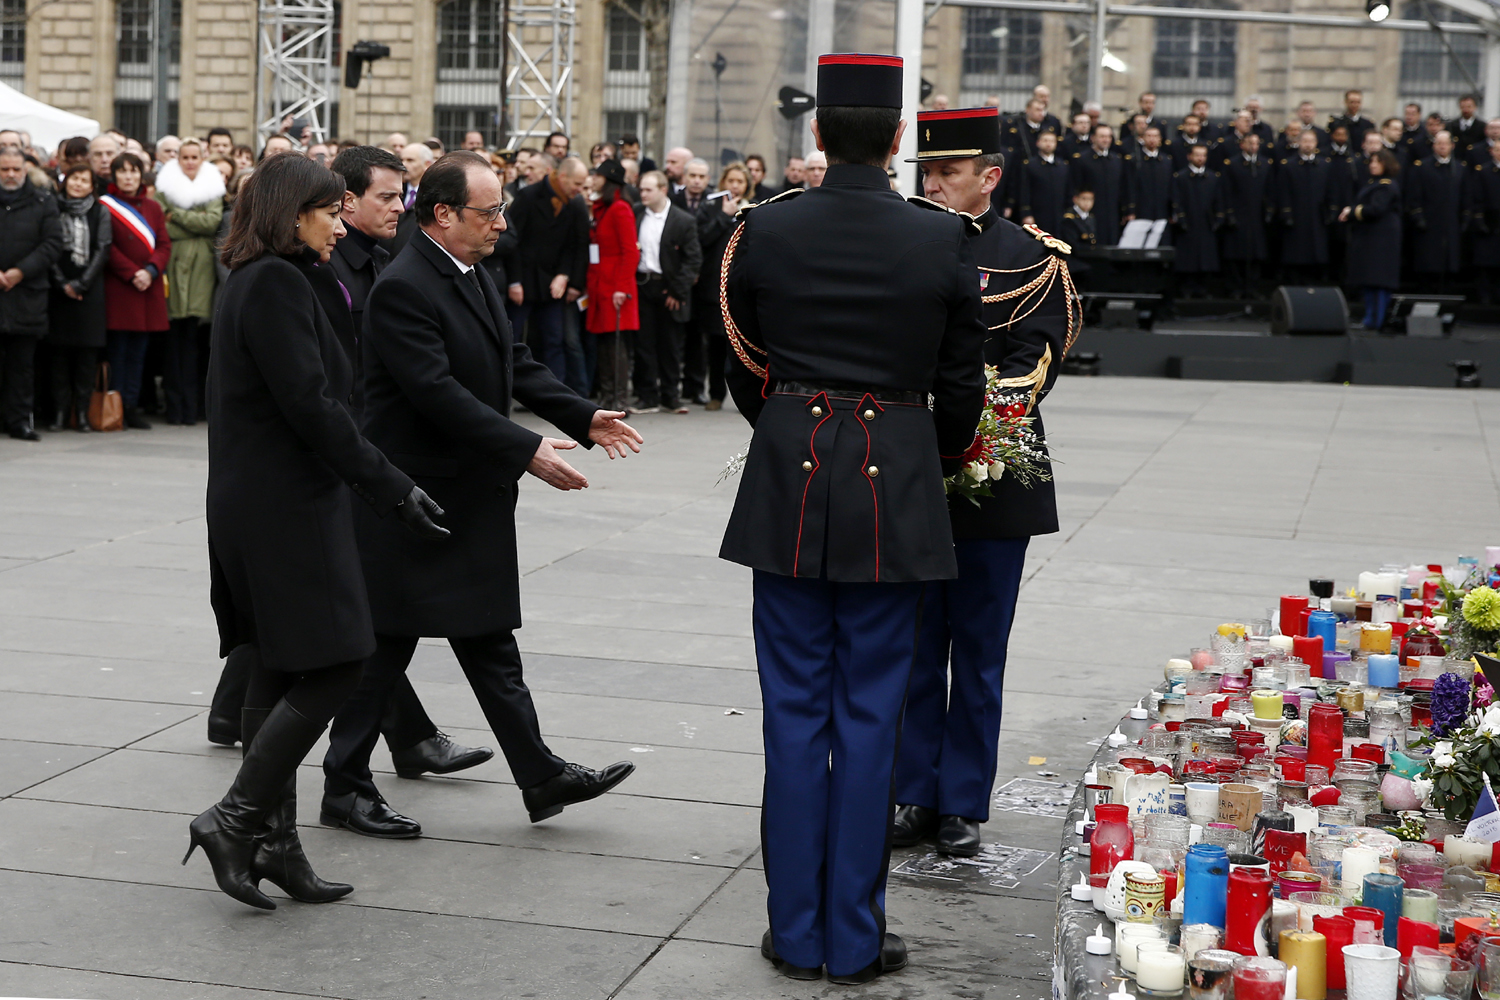 (From L) Mayor of Paris Anne Hidalgo, French President Francois Hollande and French Prime Minister Manuel Valls attend a remembrance rally at Place de la Republique (Republic square) on January 10, 2016 to mark a year since 1.6 million people thronged the French capital in a show of unity after attacks on the Charlie Hebdo newspaper and a Jewish supermarket. Just as it was last year, the vast Place de la Republique will be the focus of the gathering as people reiterate their support for freedom of expression and remember the other victims of what would become a year of jihadist outrages in France, culminating in the November 13 coordinated shootings and suicide bombings that killed 130 people and were claimed by the Islamic State (IS) group. / AFP / POOL / YOAN VALAT